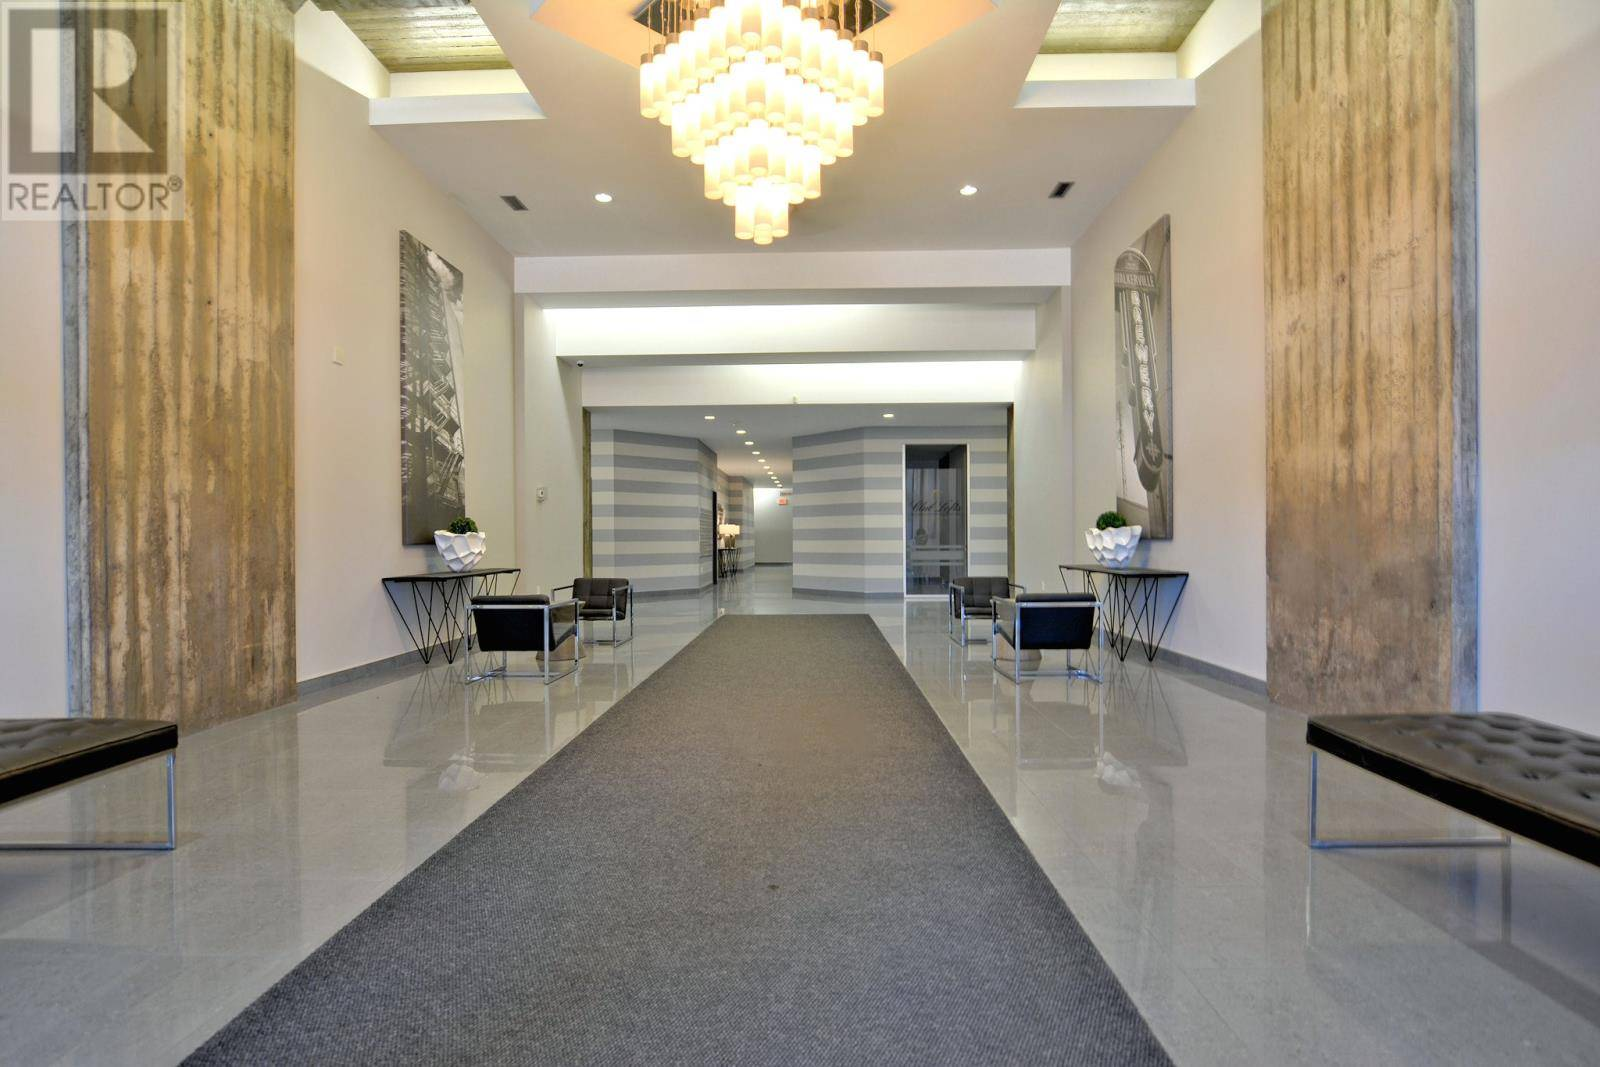 Condo for sale at 2175 Wyandotte St East Unit 112 Windsor Ontario - MLS: 19023269